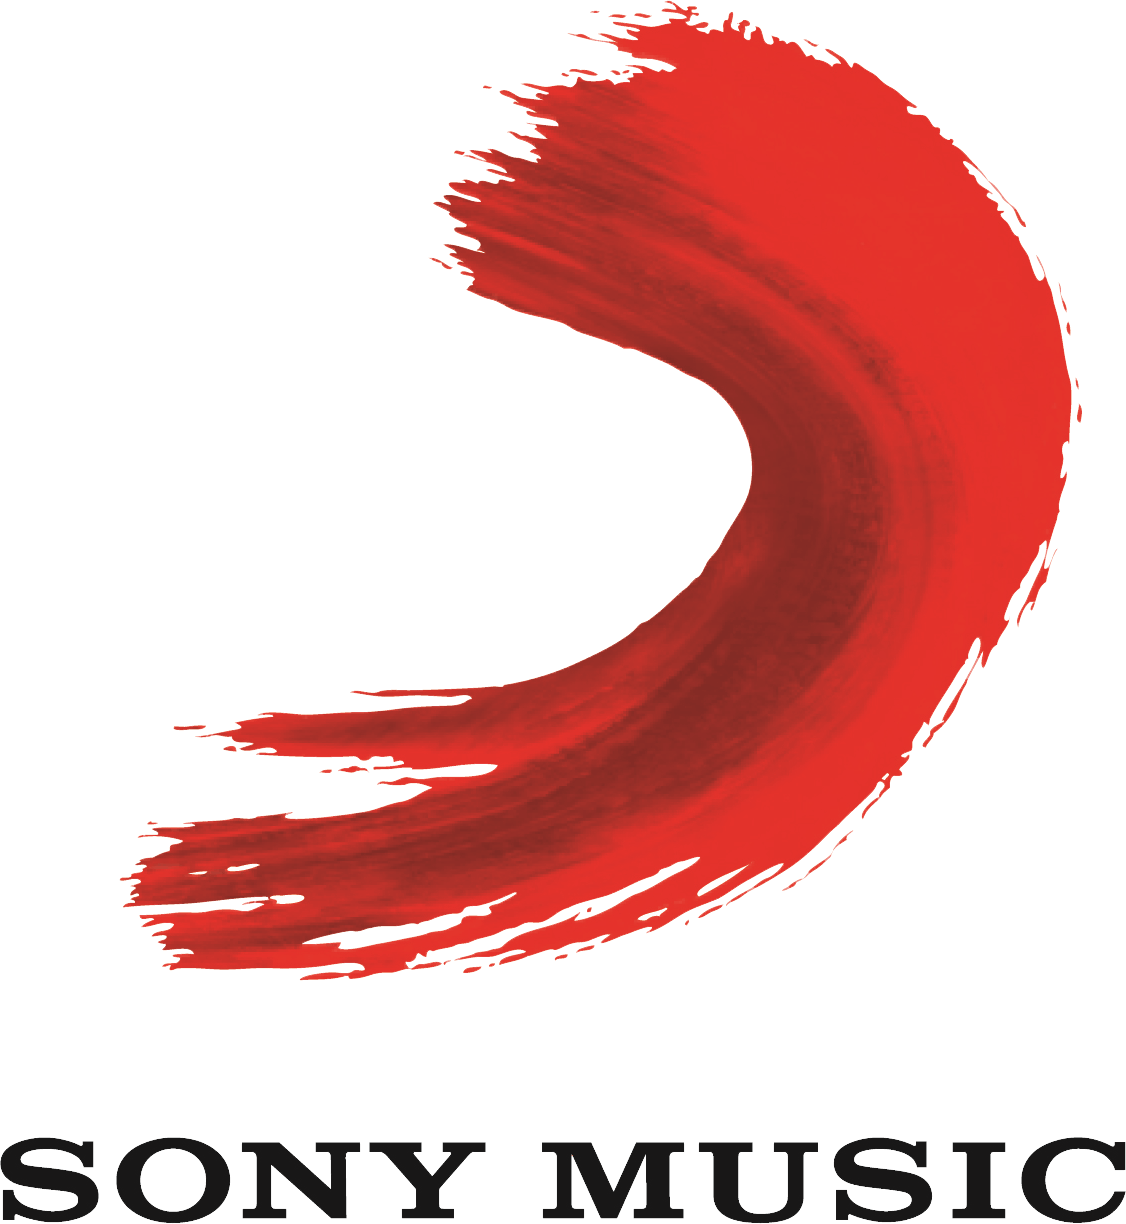 SONY MUSIC BECOMES FIRST RECORD LABEL TO MONETIZE ILLEGAL REMIXES